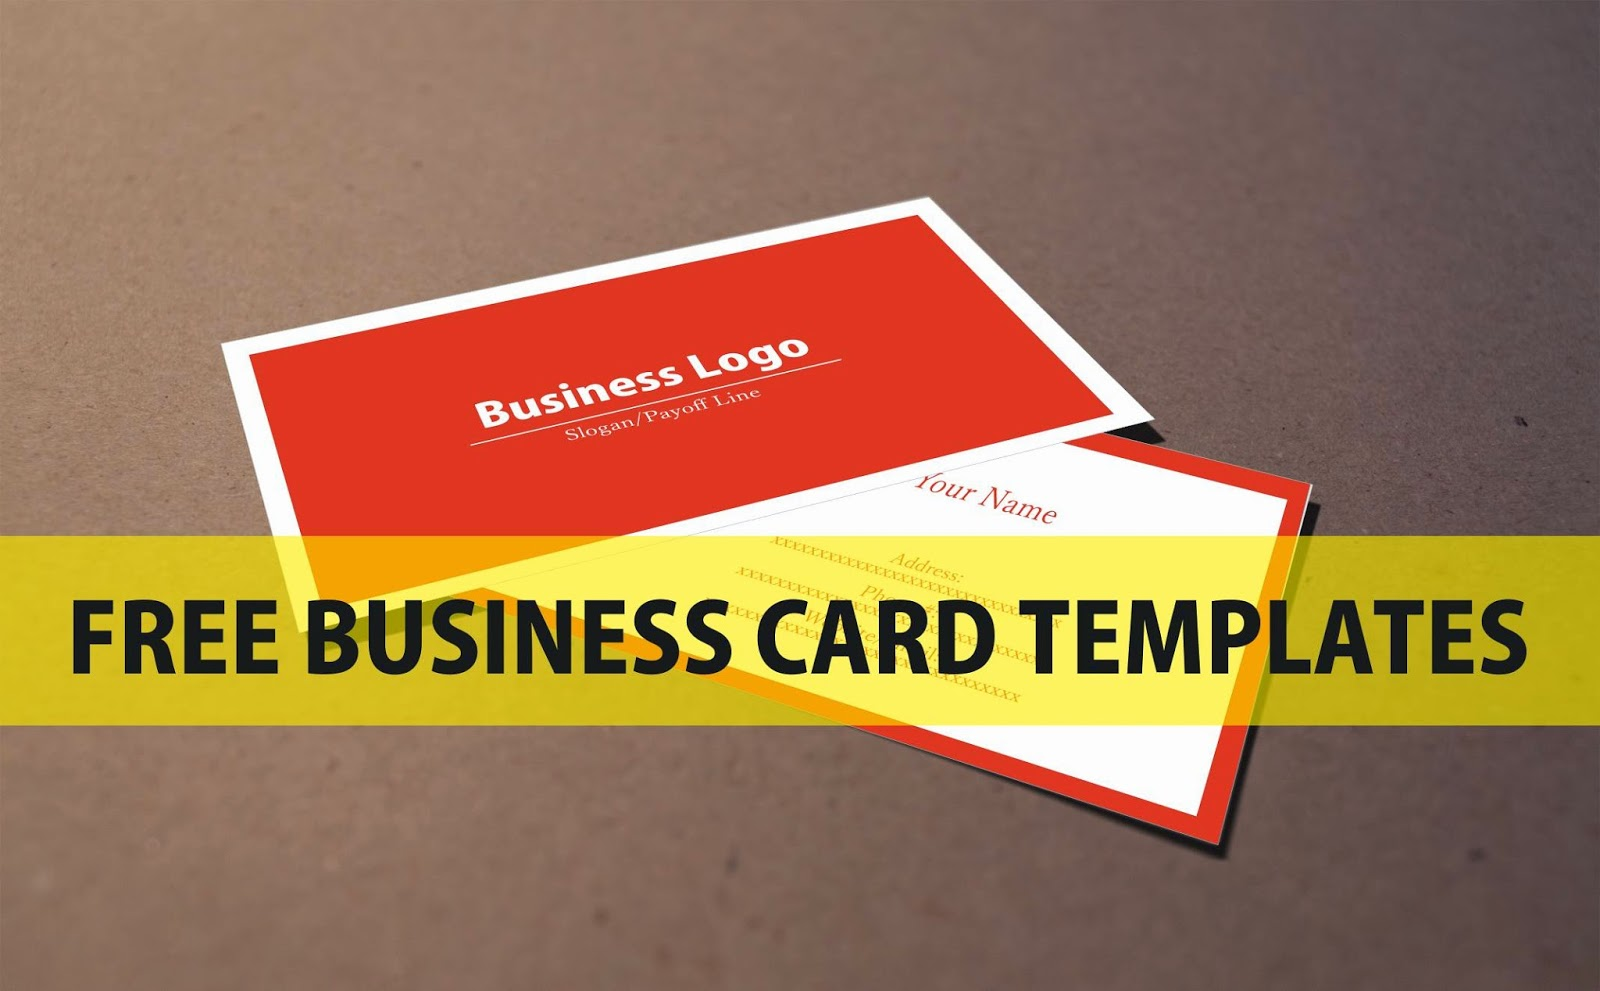 Templates for business cards free business card sample business card design templates free download wajeb Image collections